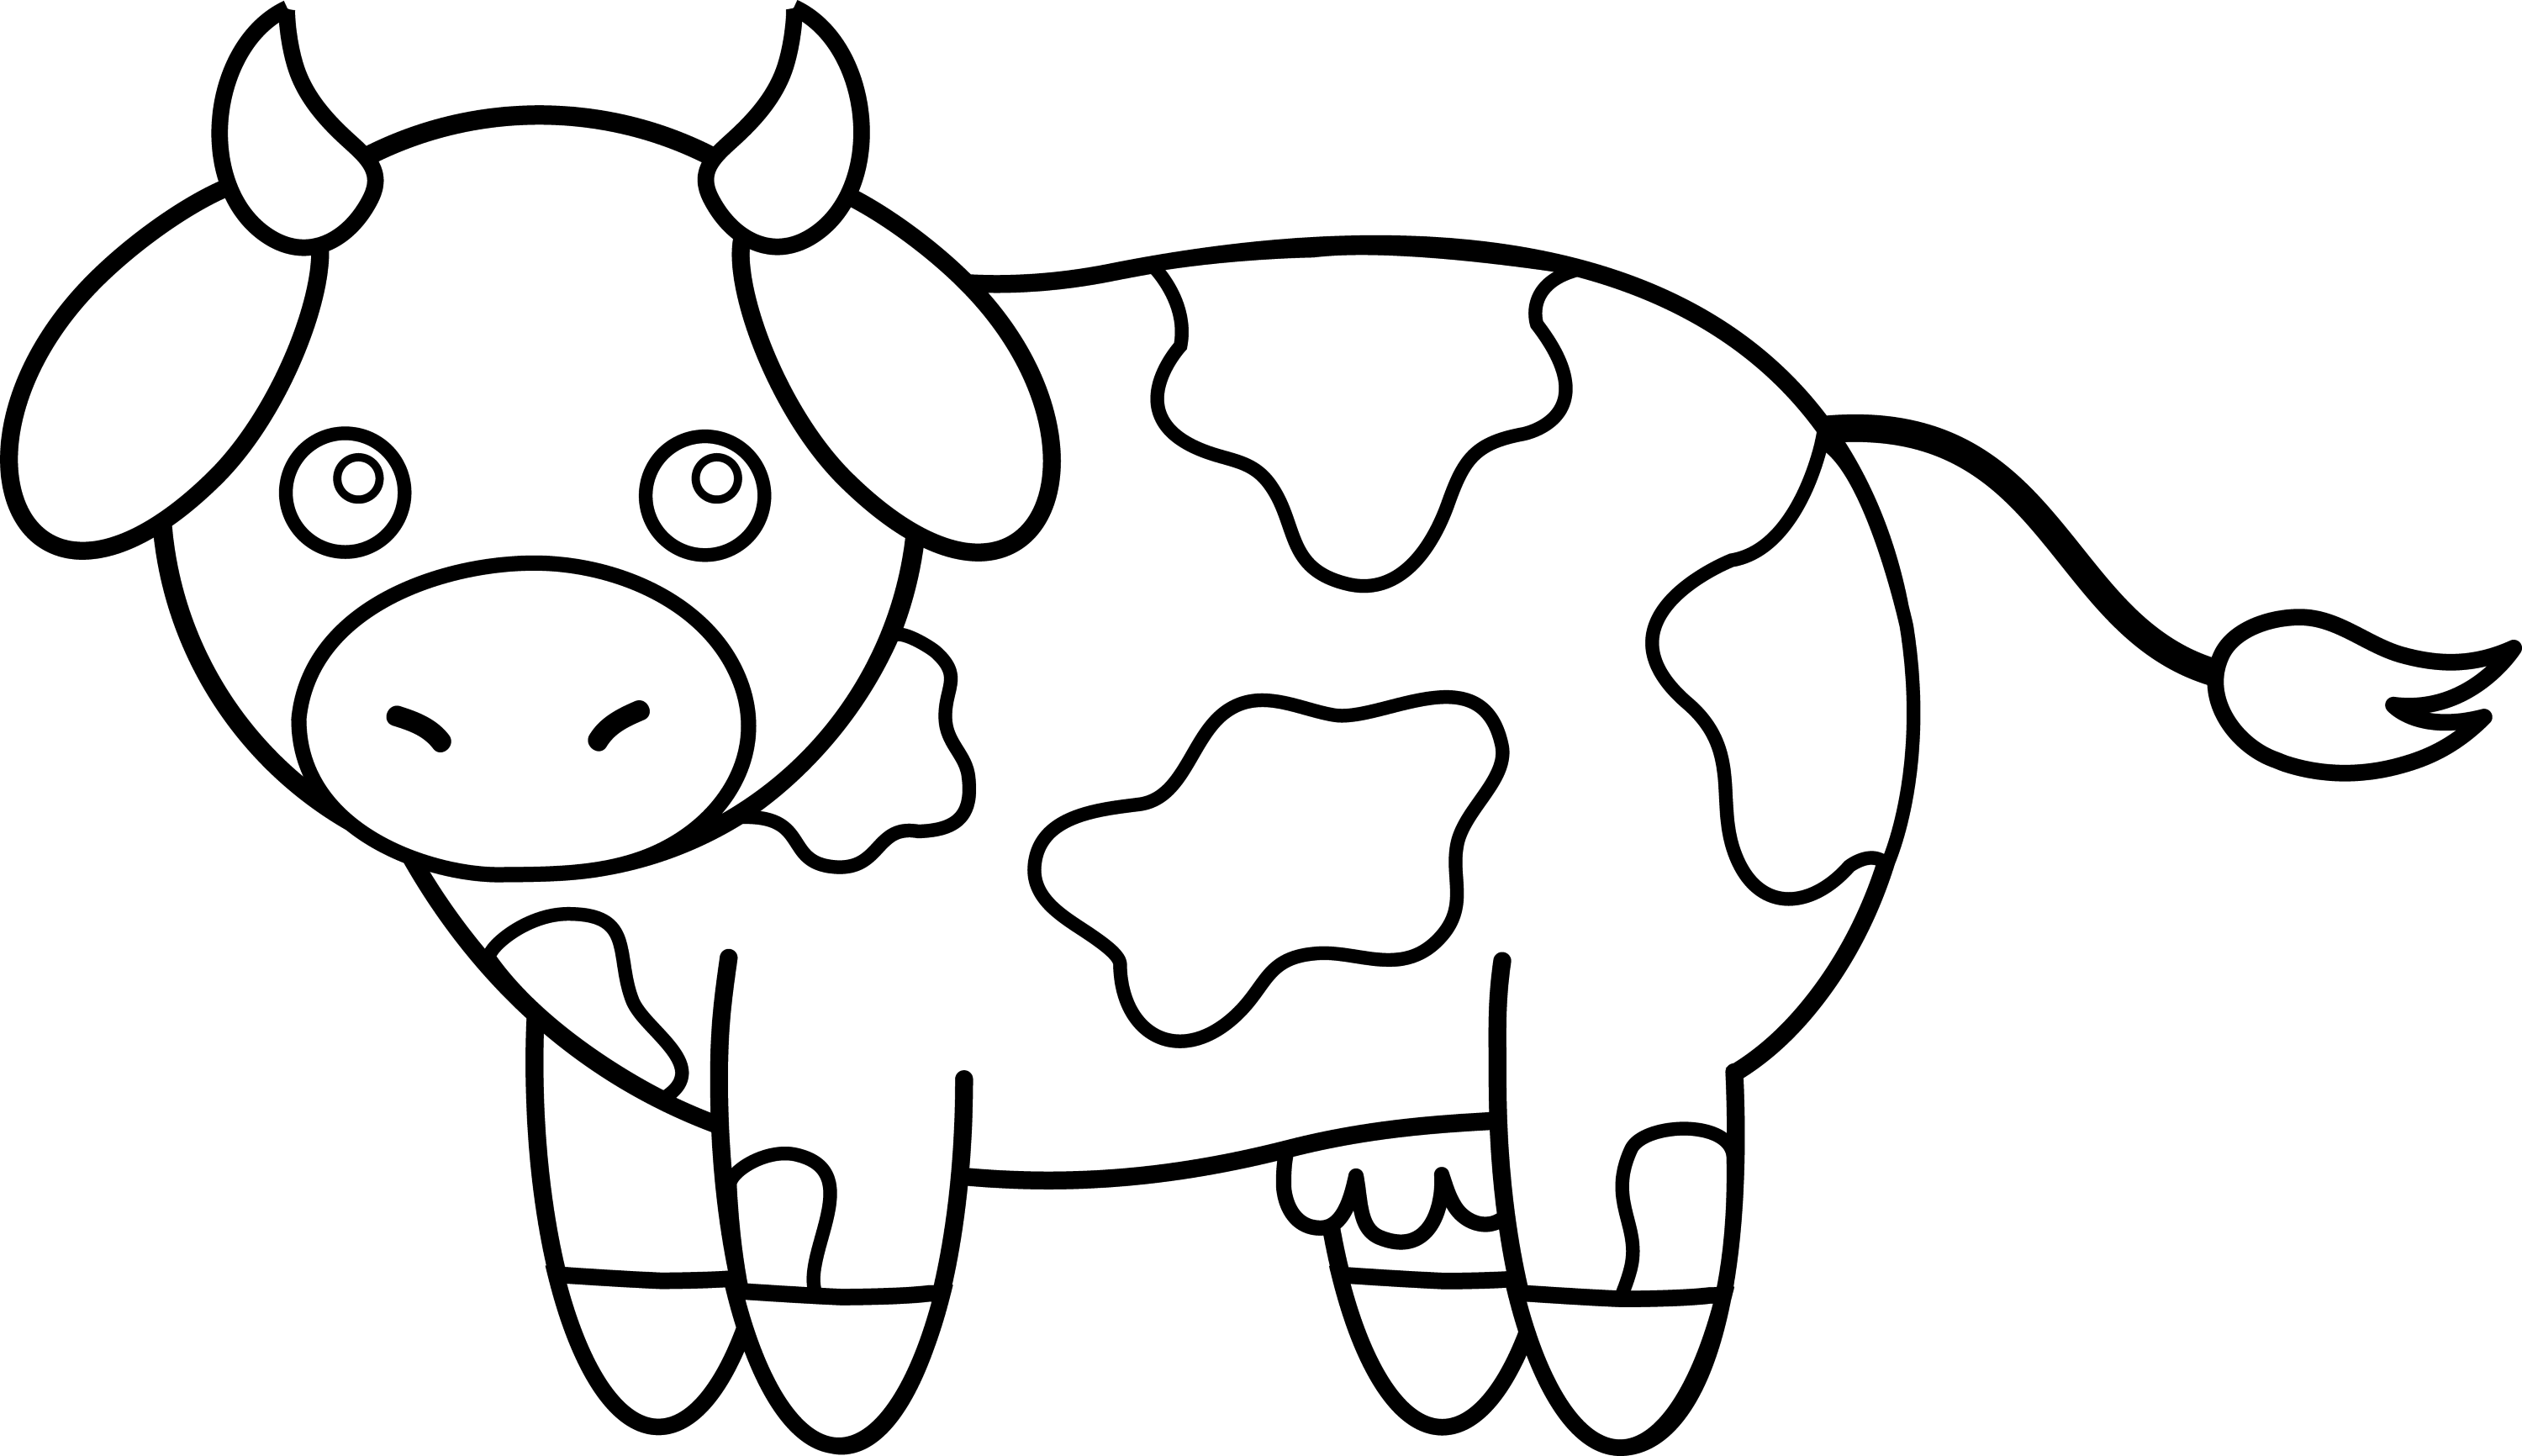 coloring cow drawing easy print super cute baby cow easy coloring pages cow coloring cow easy drawing